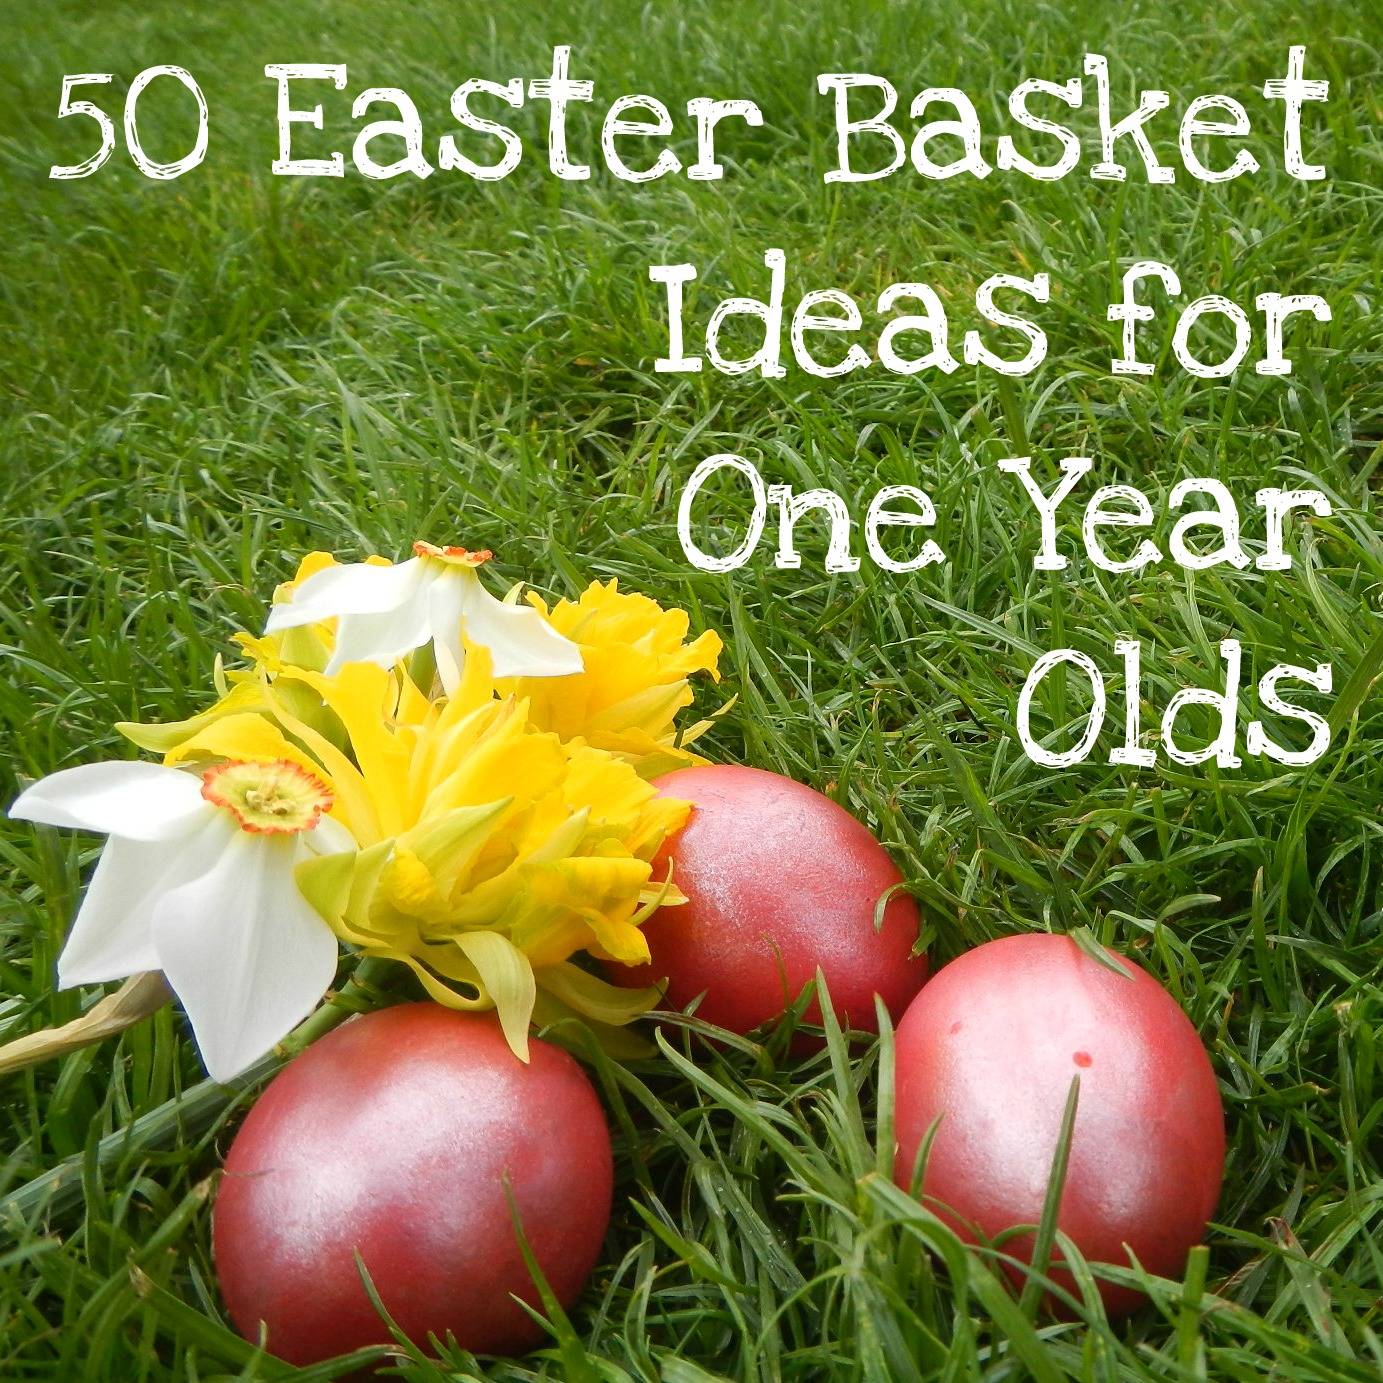 Messy wife blessed life 50 easter basket ideas for one year olds 50 easter basket ideas for one year olds negle Image collections